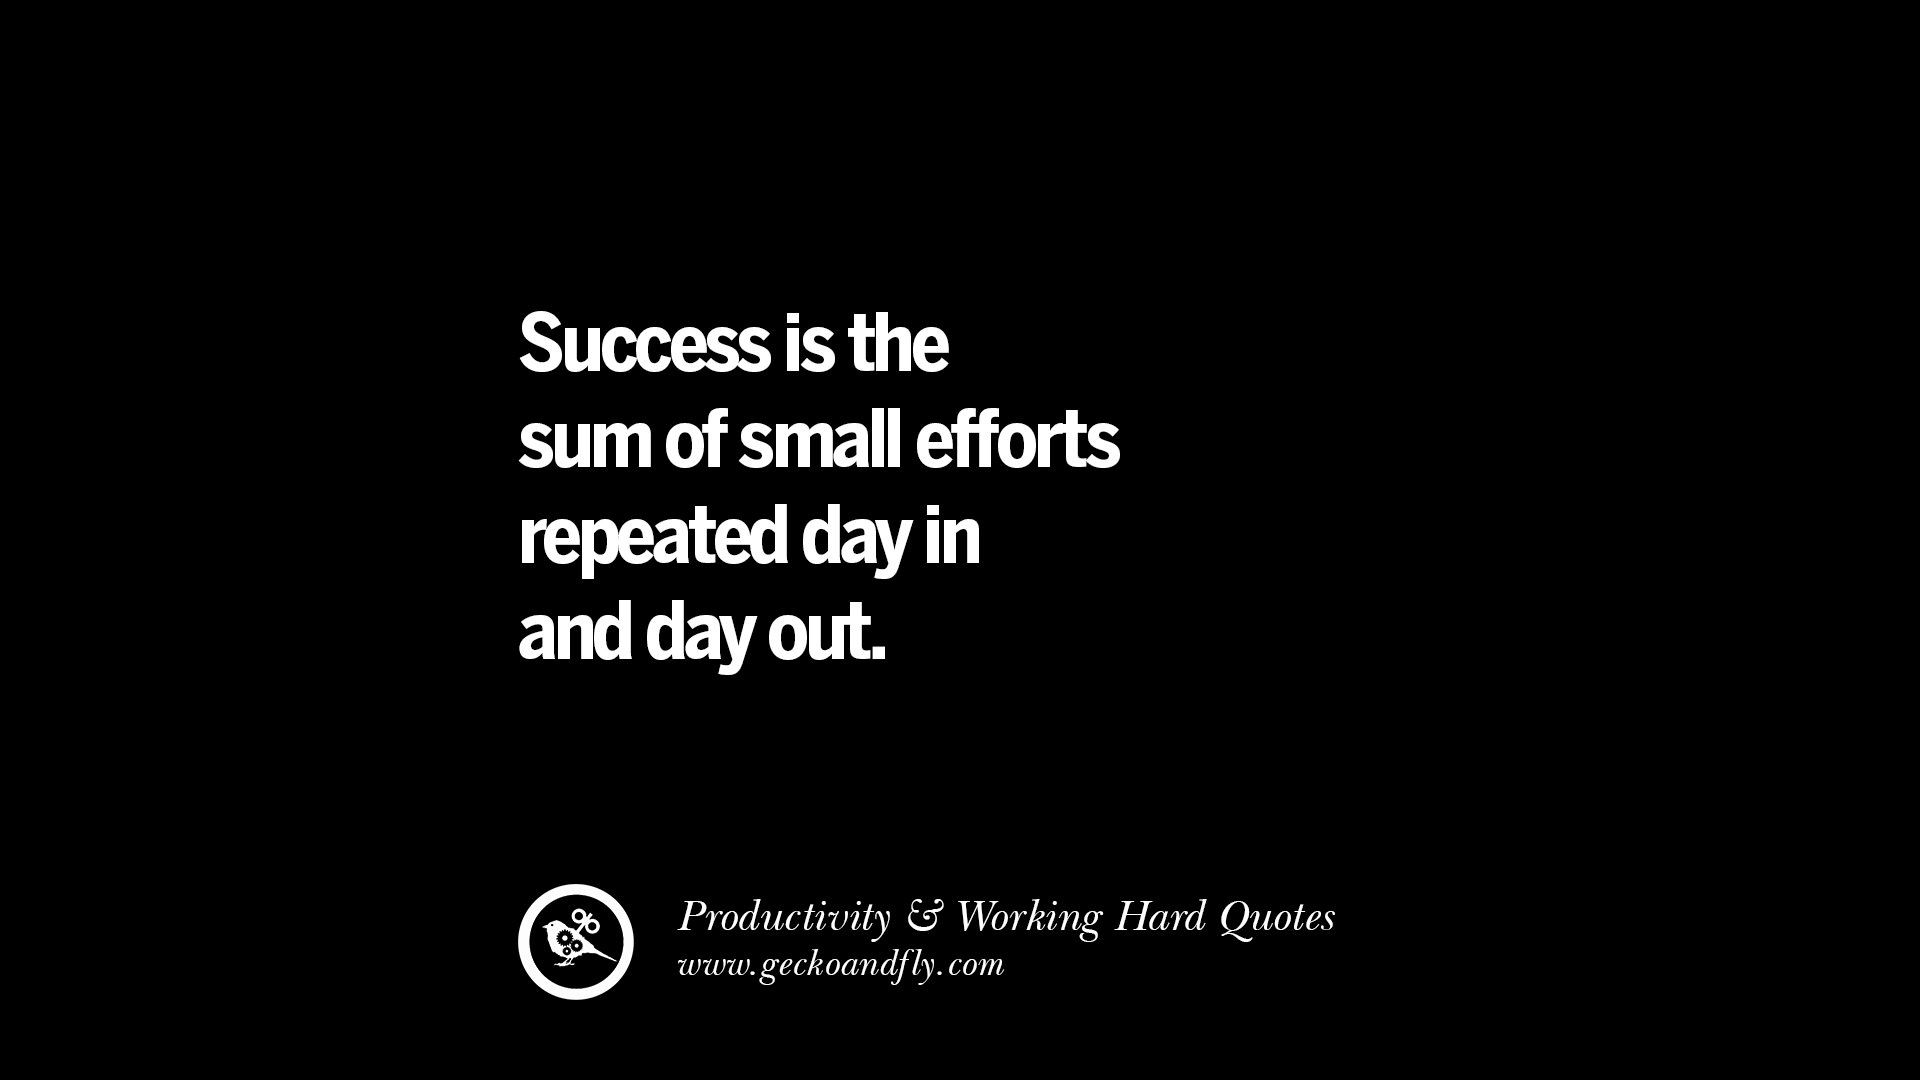 Inspirational Quotes: 30 Uplifting Quotes On Increasing Productivity And Working